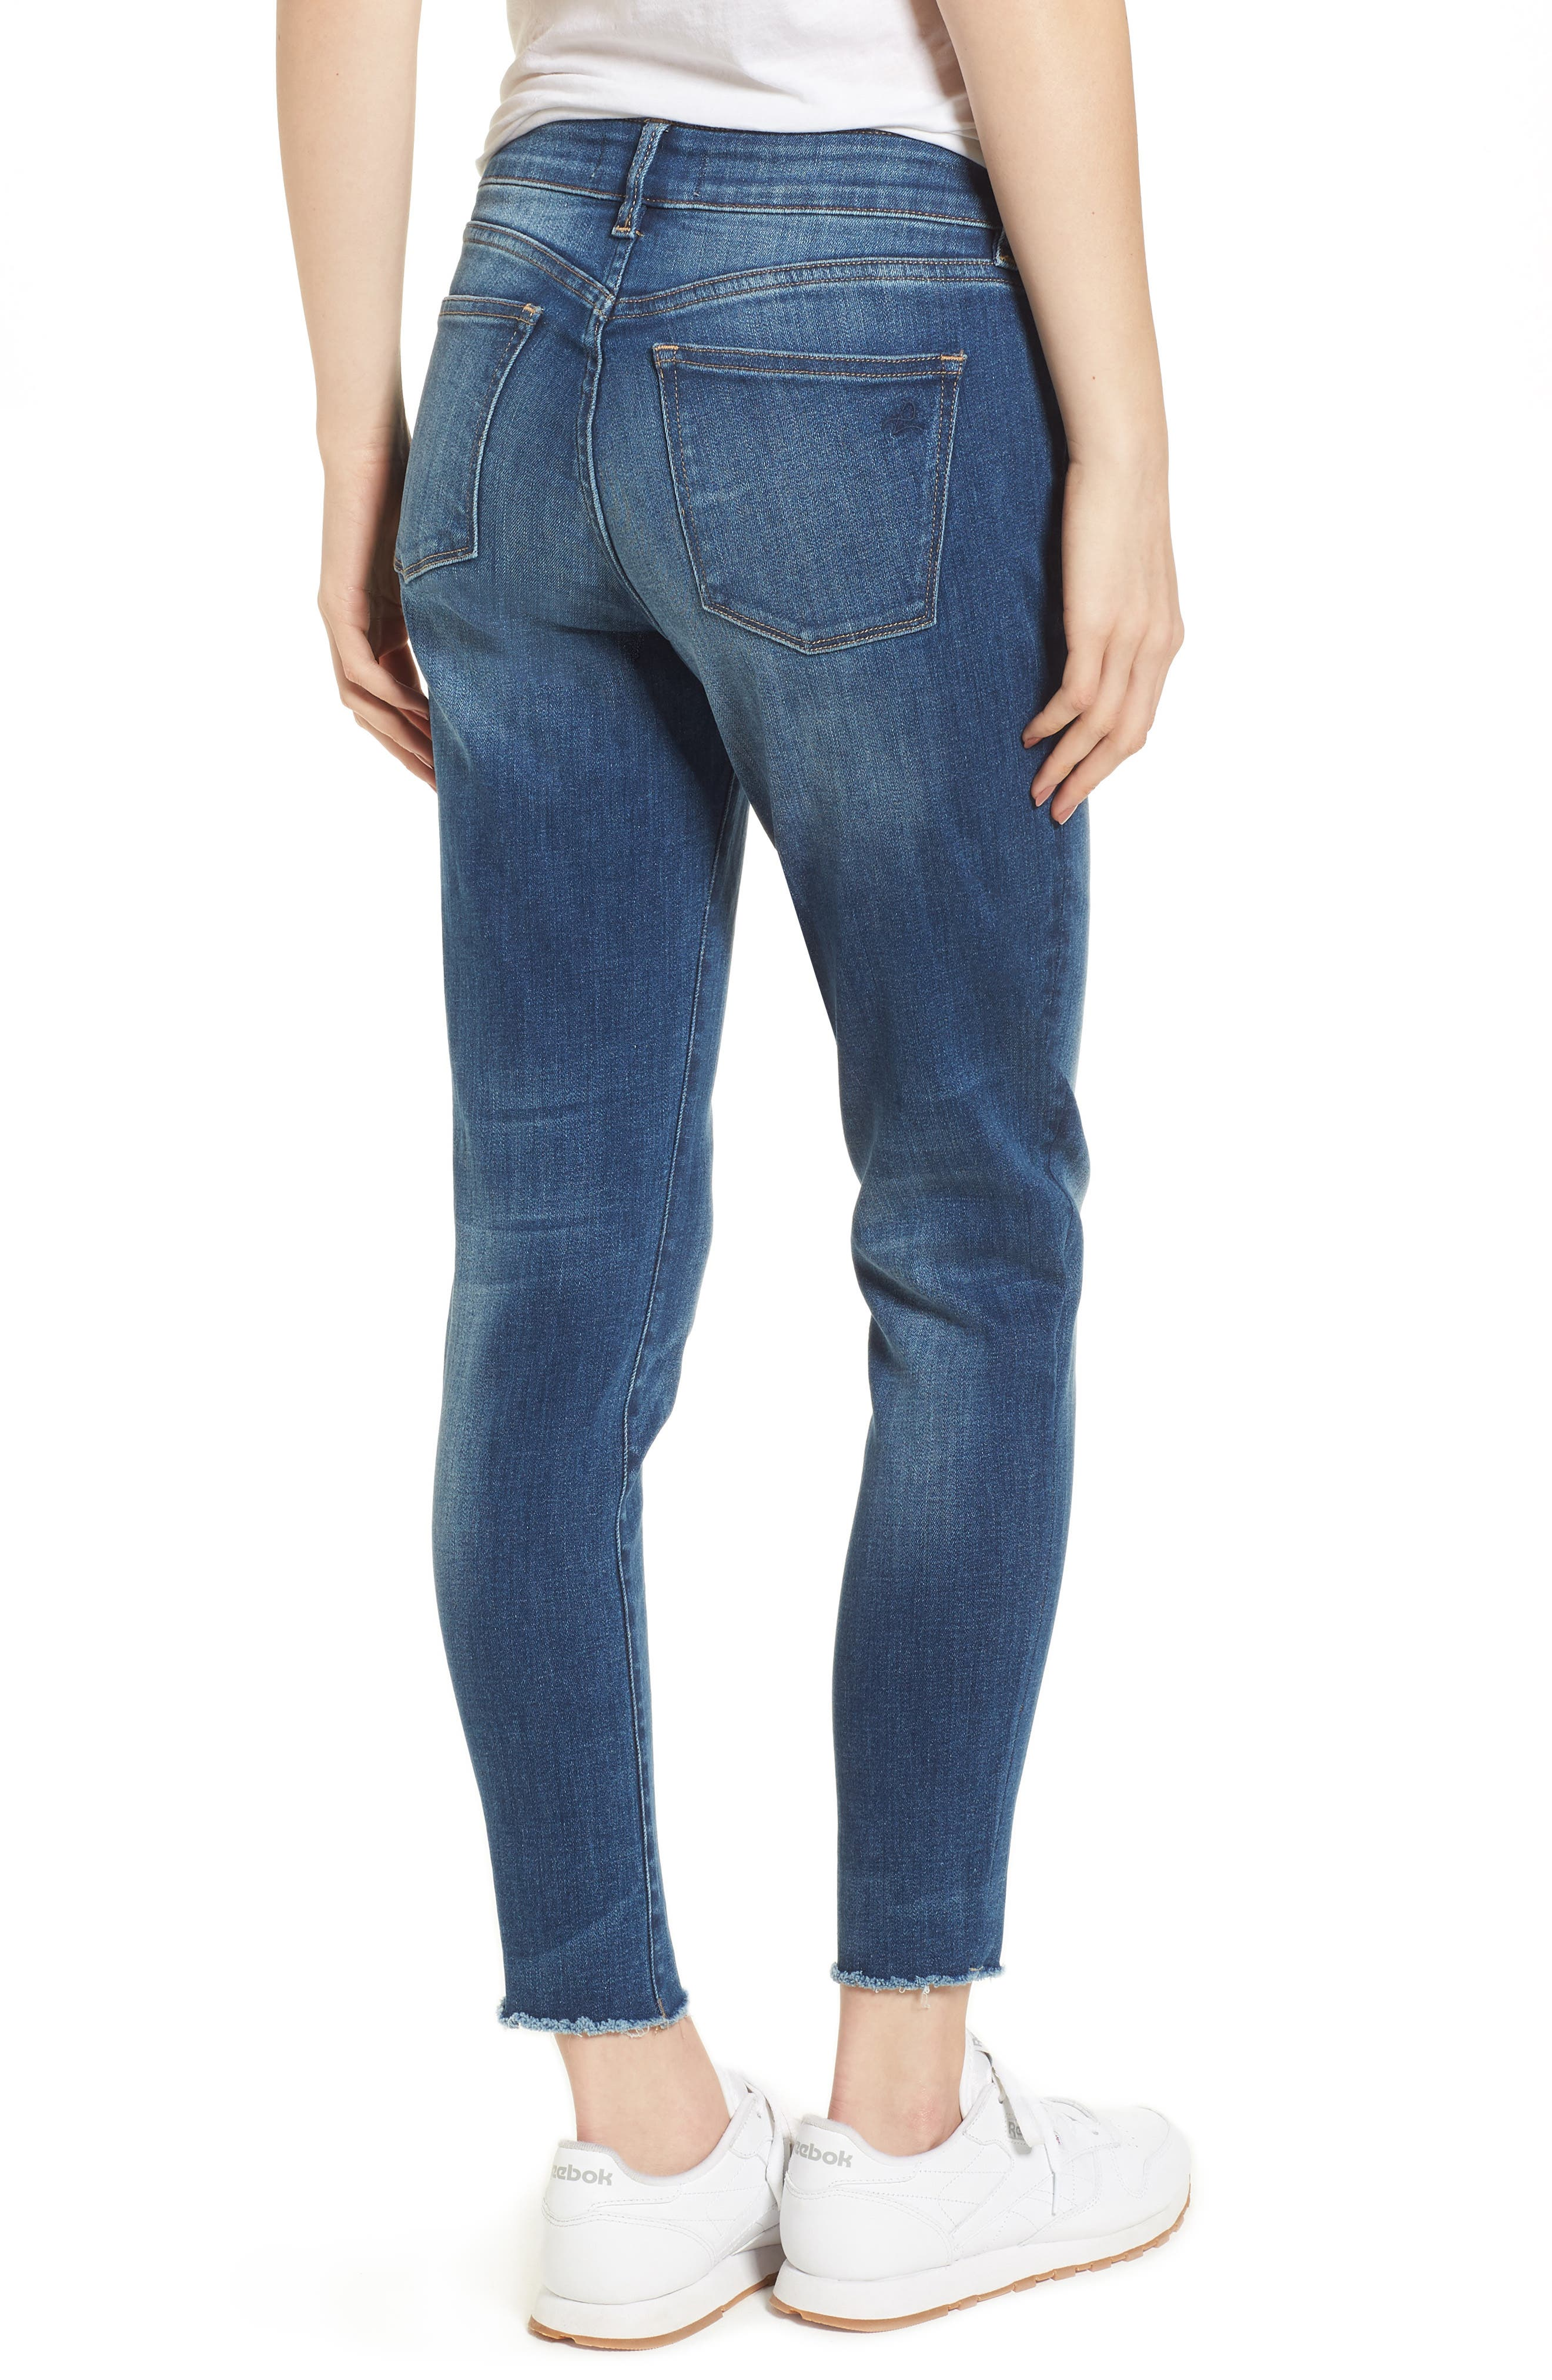 Coco Curvy Ankle Skinny Jeans,                             Alternate thumbnail 2, color,                             426